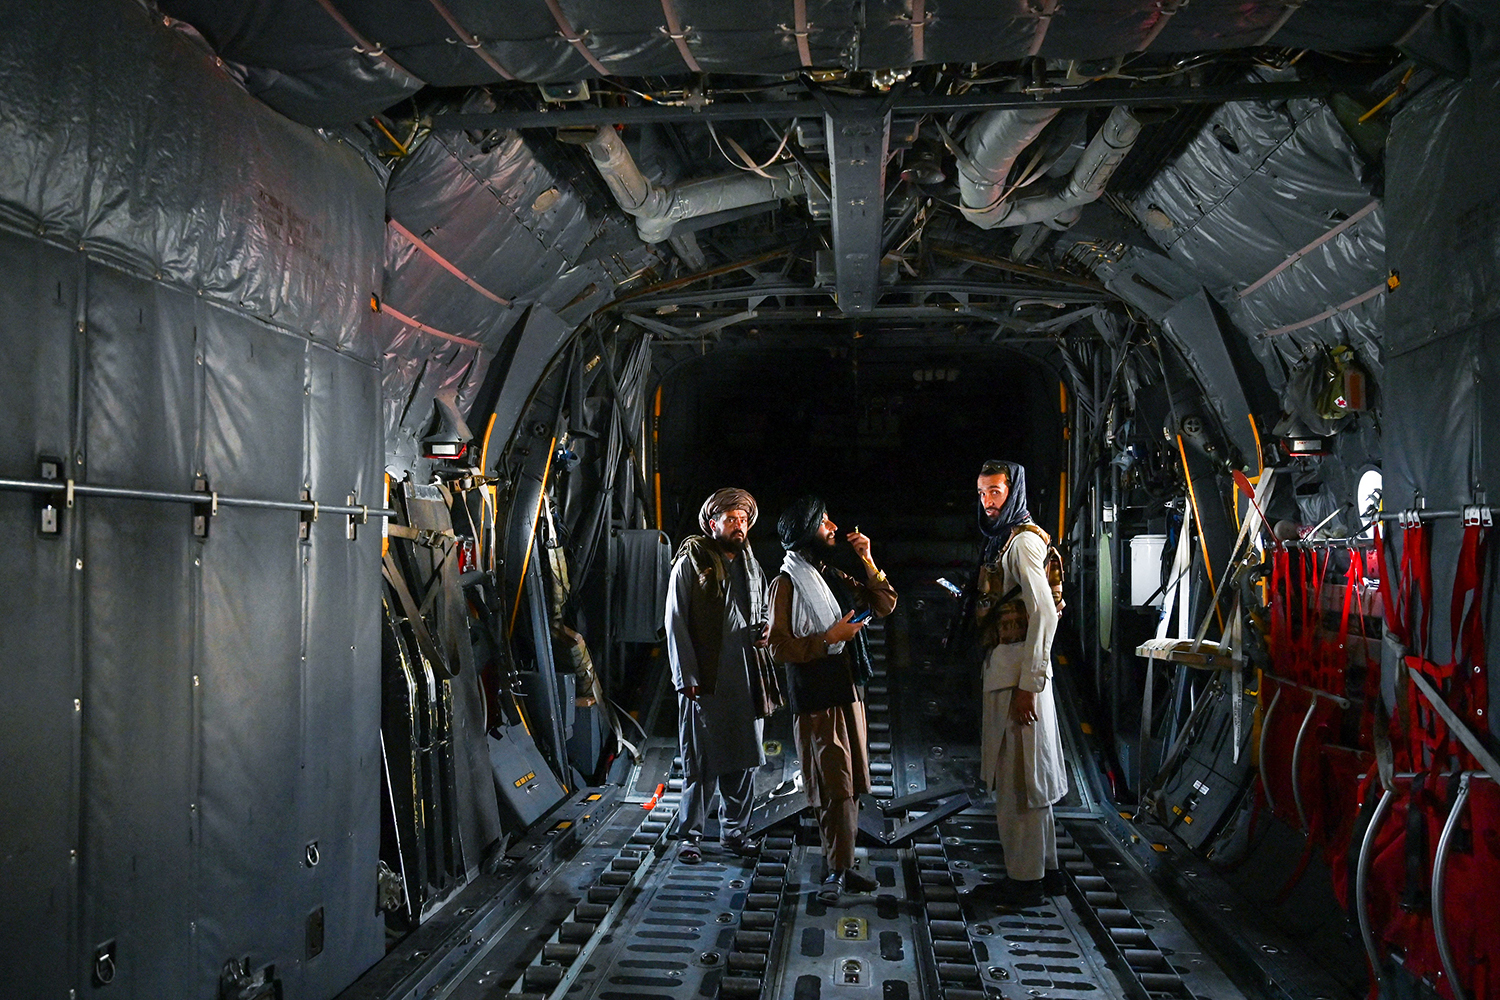 Taliban fighters in aircraft in Kabul